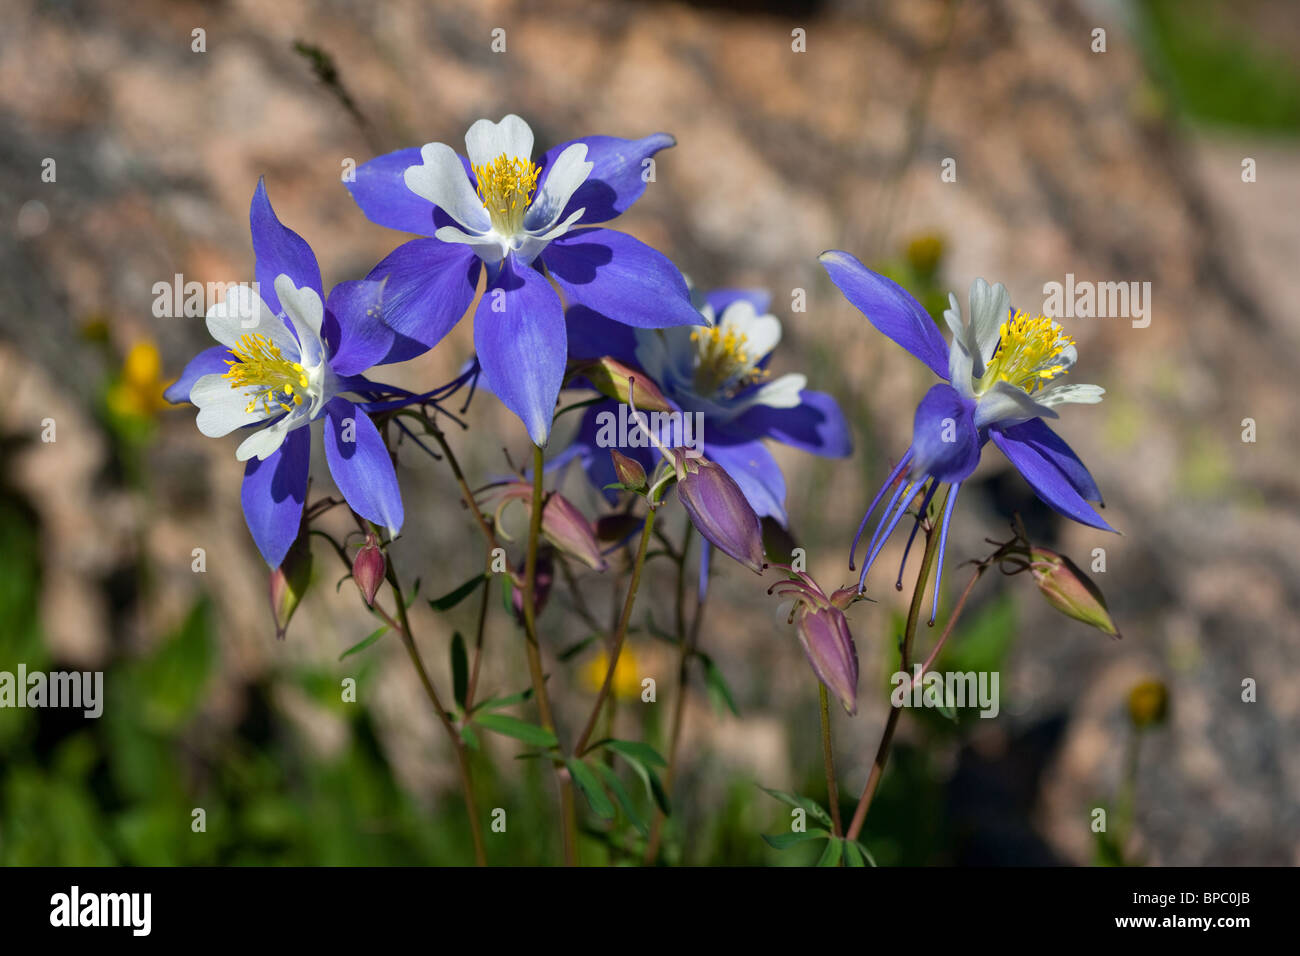 Colorado state flower vibrant blue columbine flowers next to the colorado state flower vibrant blue columbine flowers next to the hiking path rocky mountain national park estes park izmirmasajfo